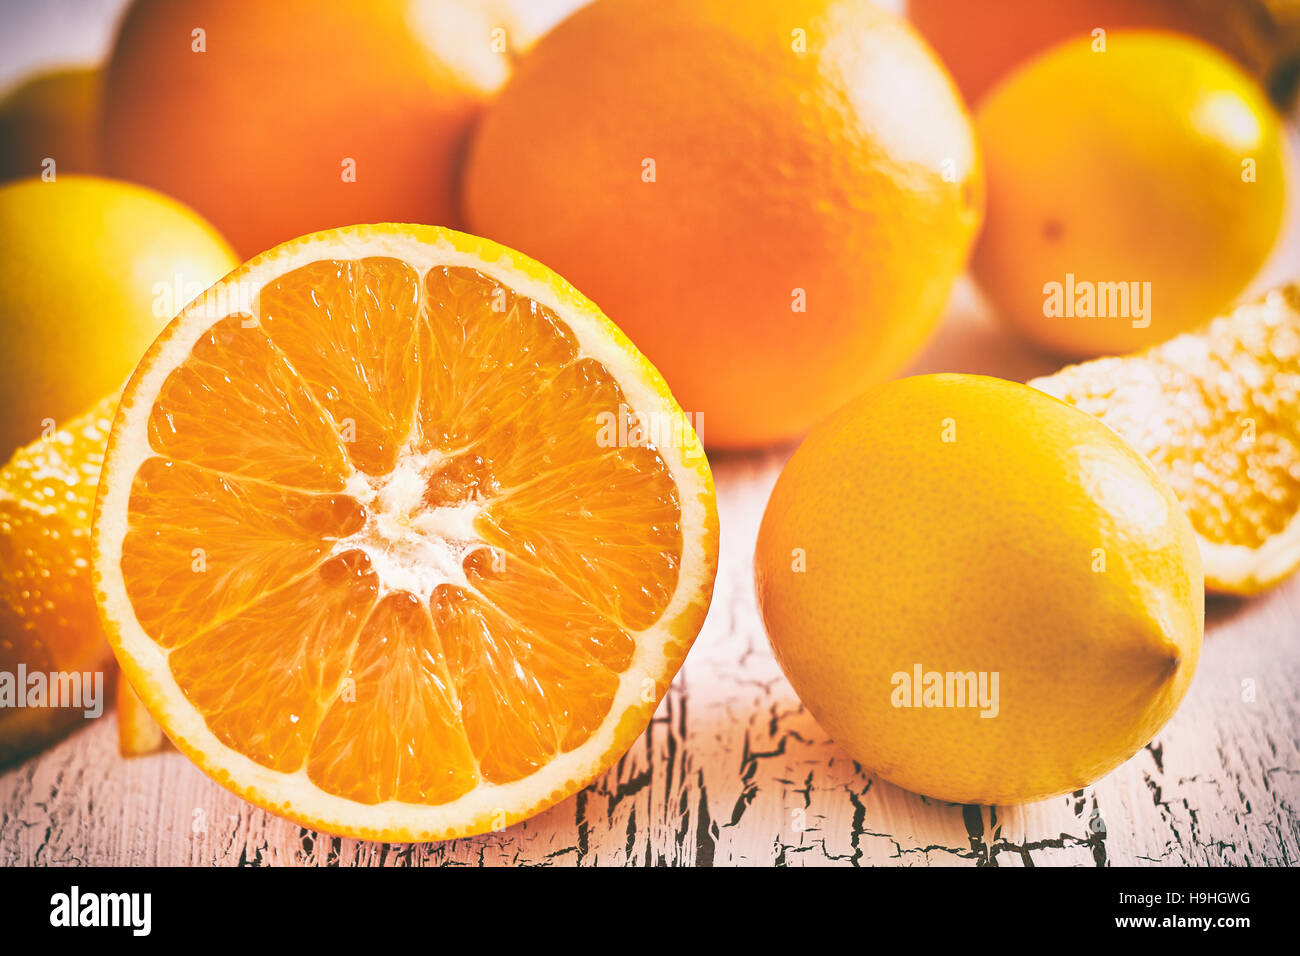 Oranges and lemons on white rustic wooden background - Stock Image